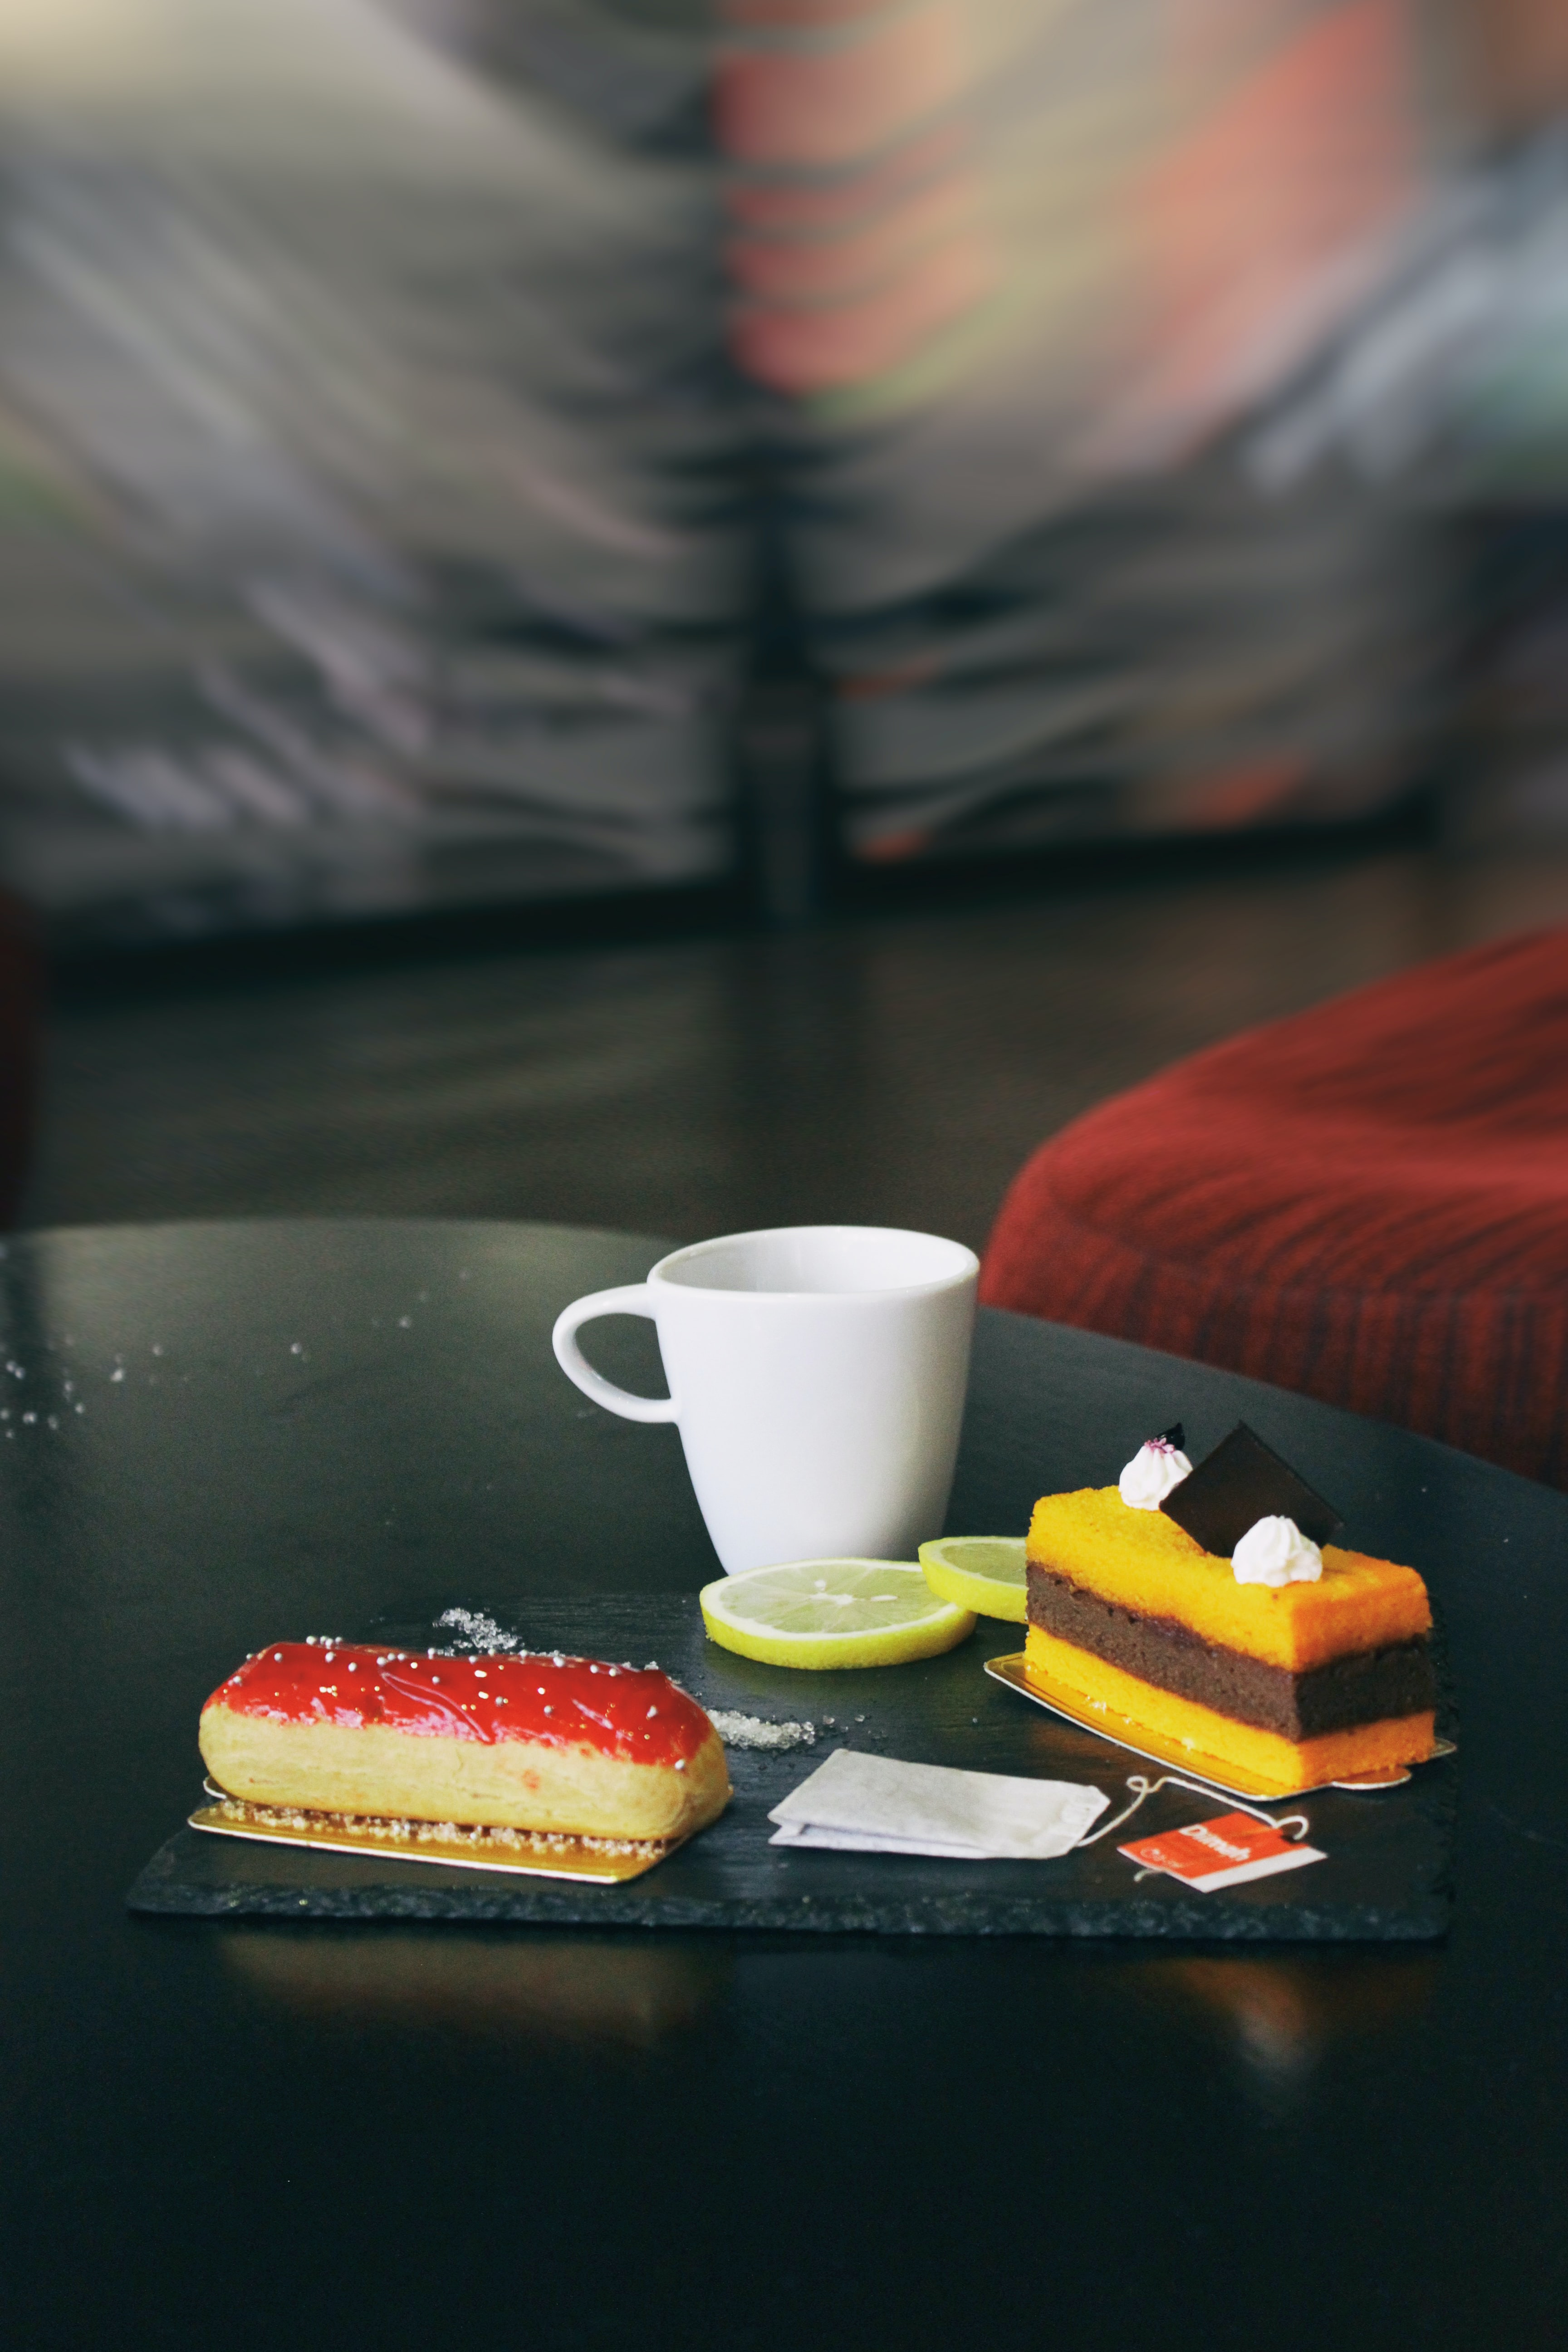 two piece of cakes and white mug on glass-top table